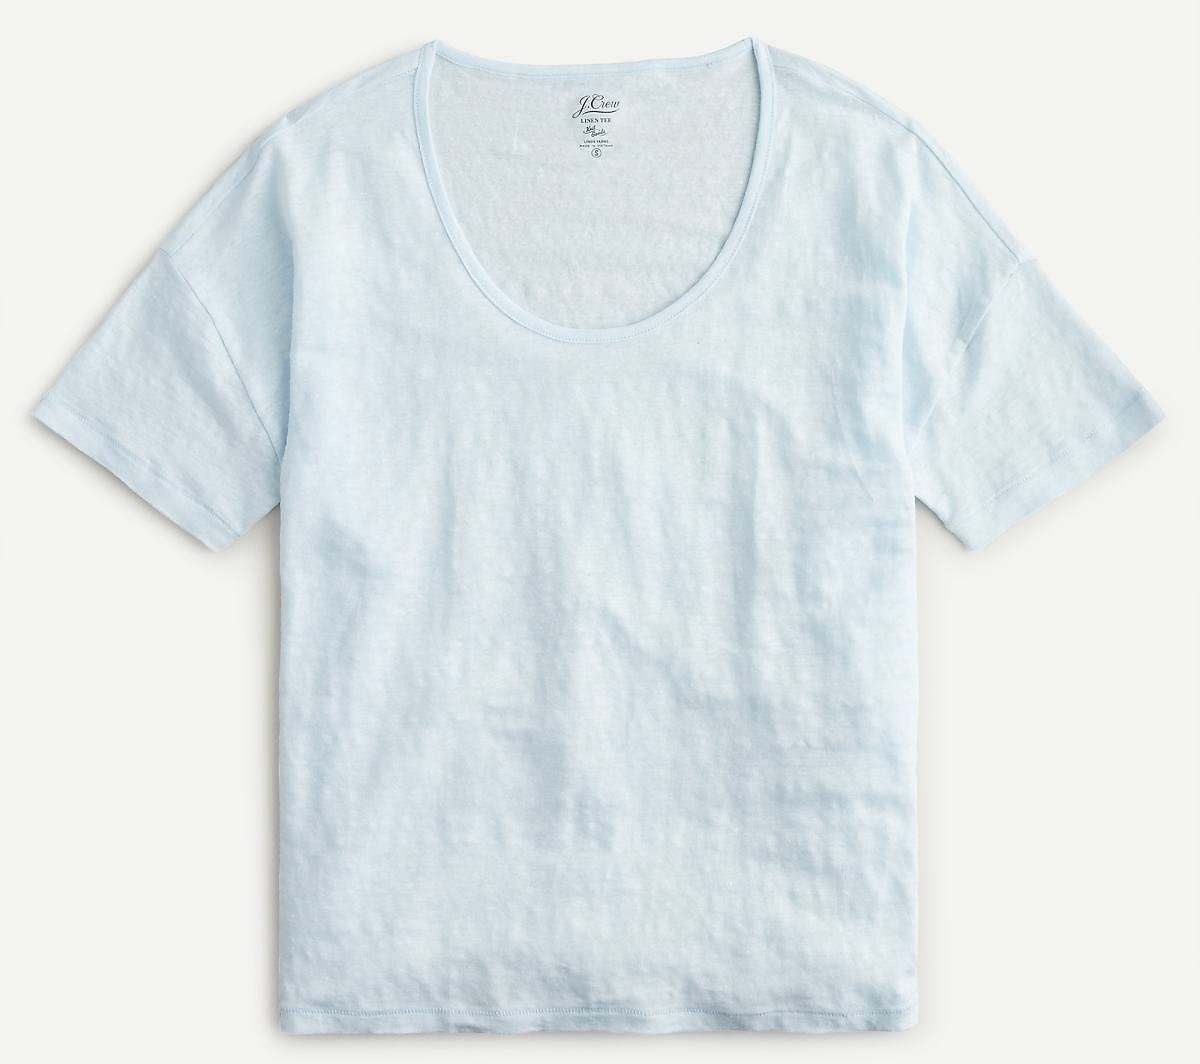 Relaxed Linen Scoopneck T-shirt (2 Colors)